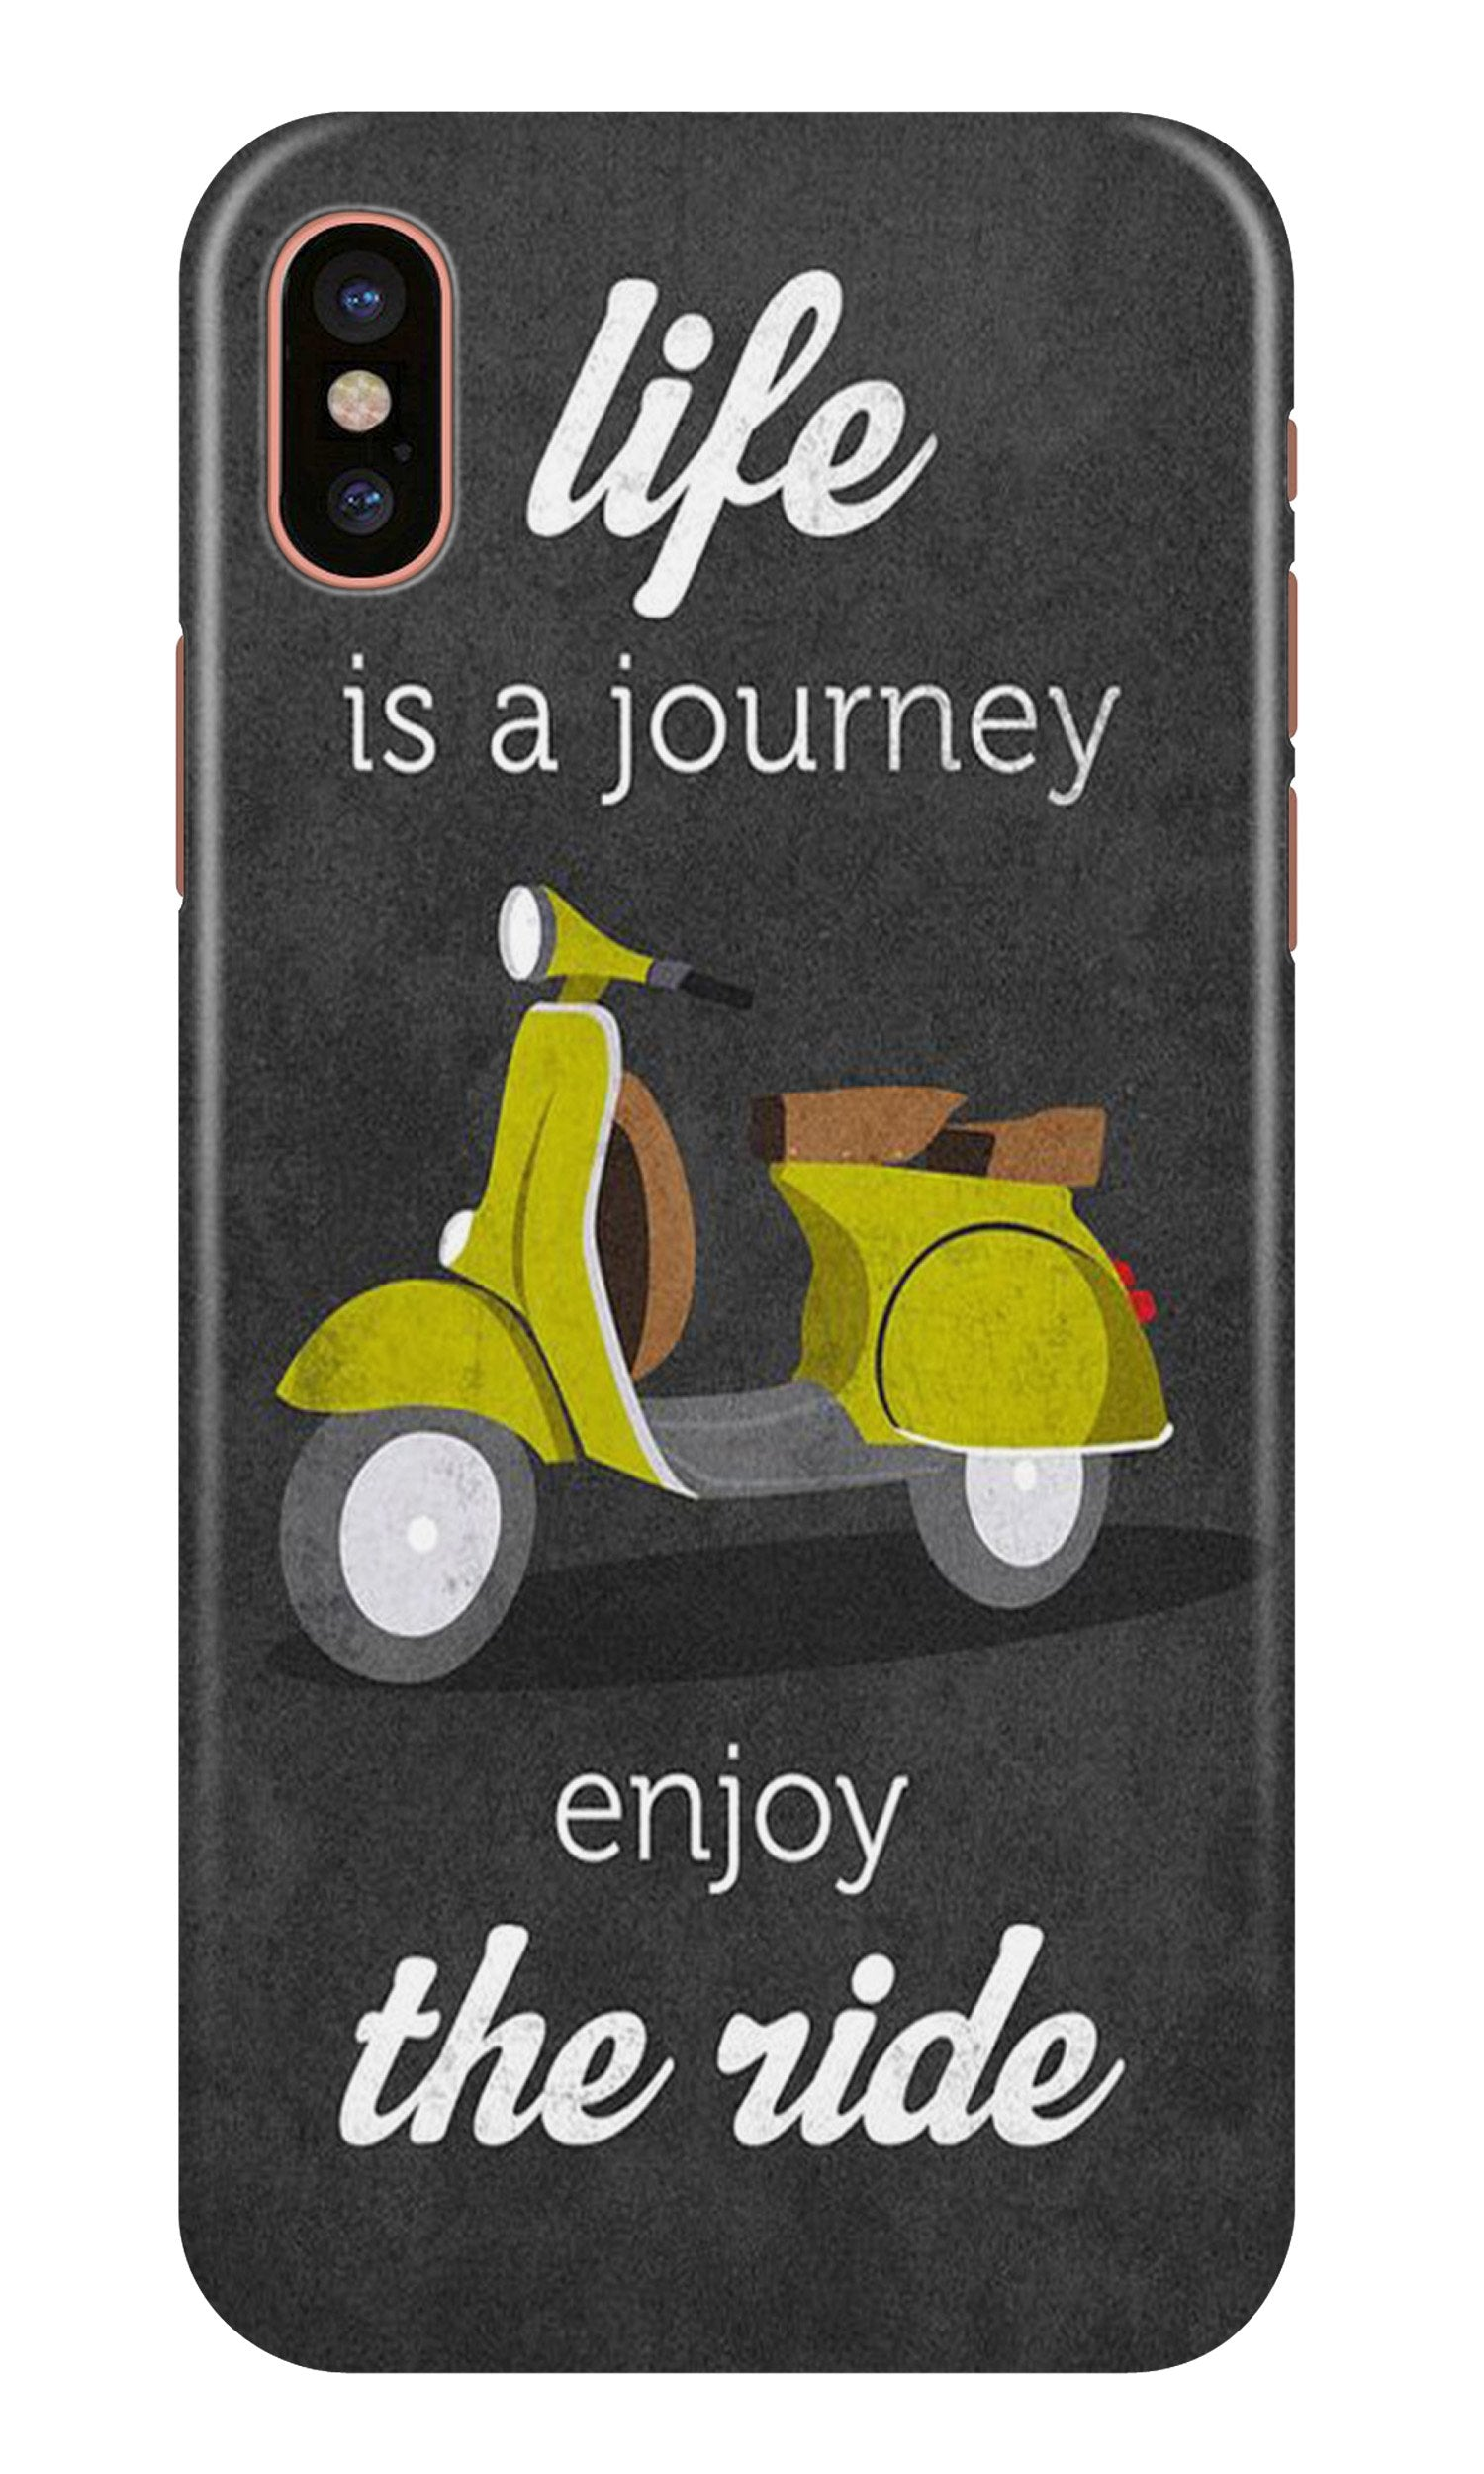 Life is a Journey Case for iPhone Xr (Design No. 261)